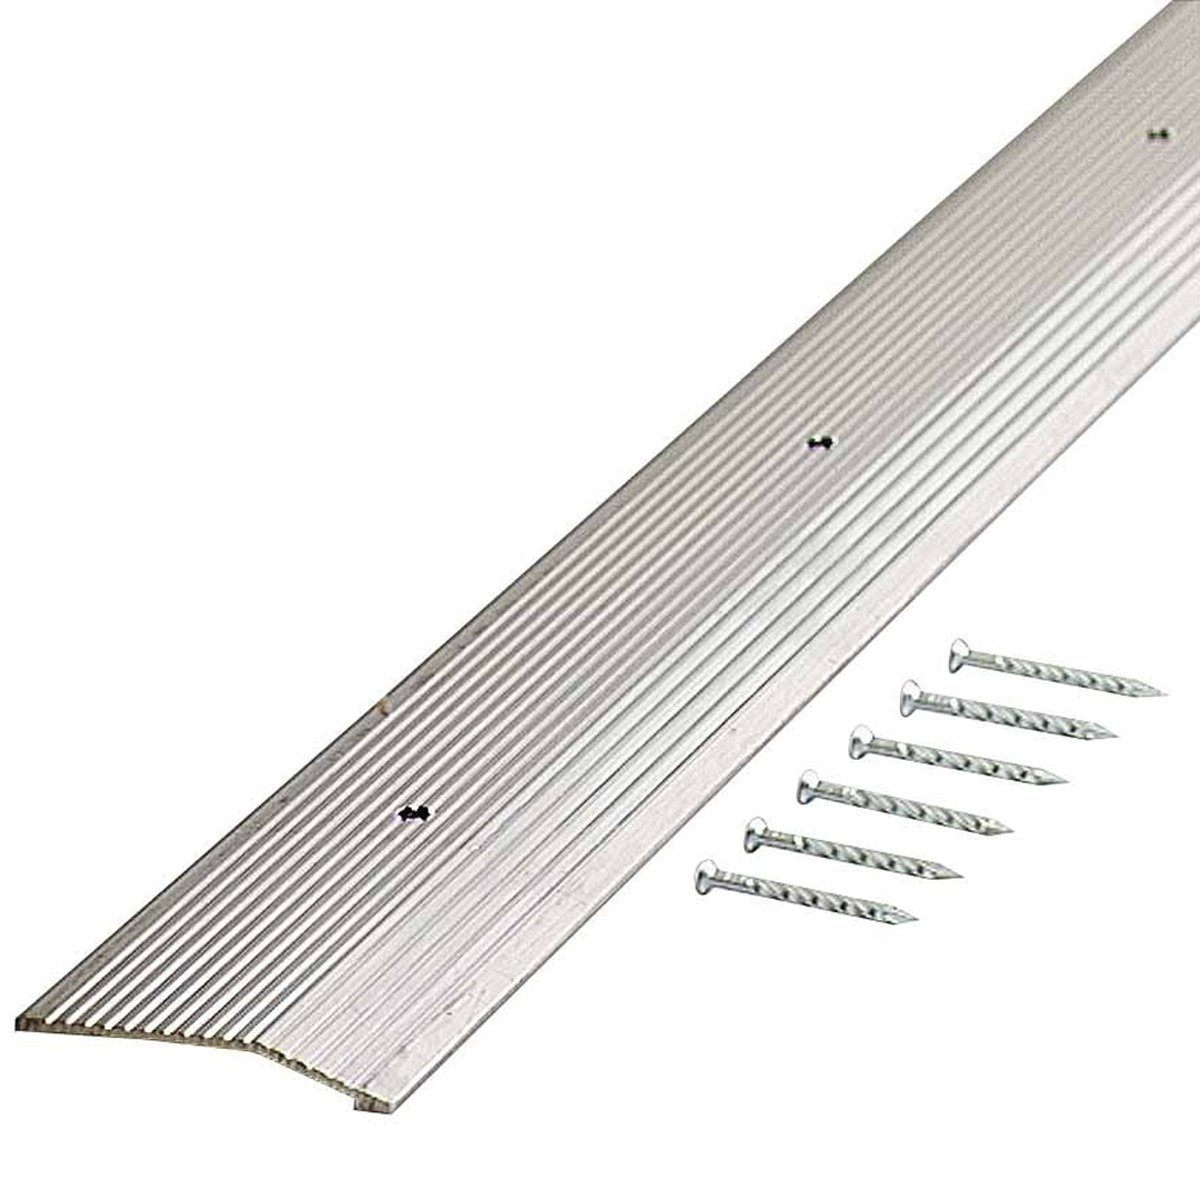 M-D Building Products 78212 Extra Wide Fluted 2-Inch by 36-Inch Carpet Trim, Silver